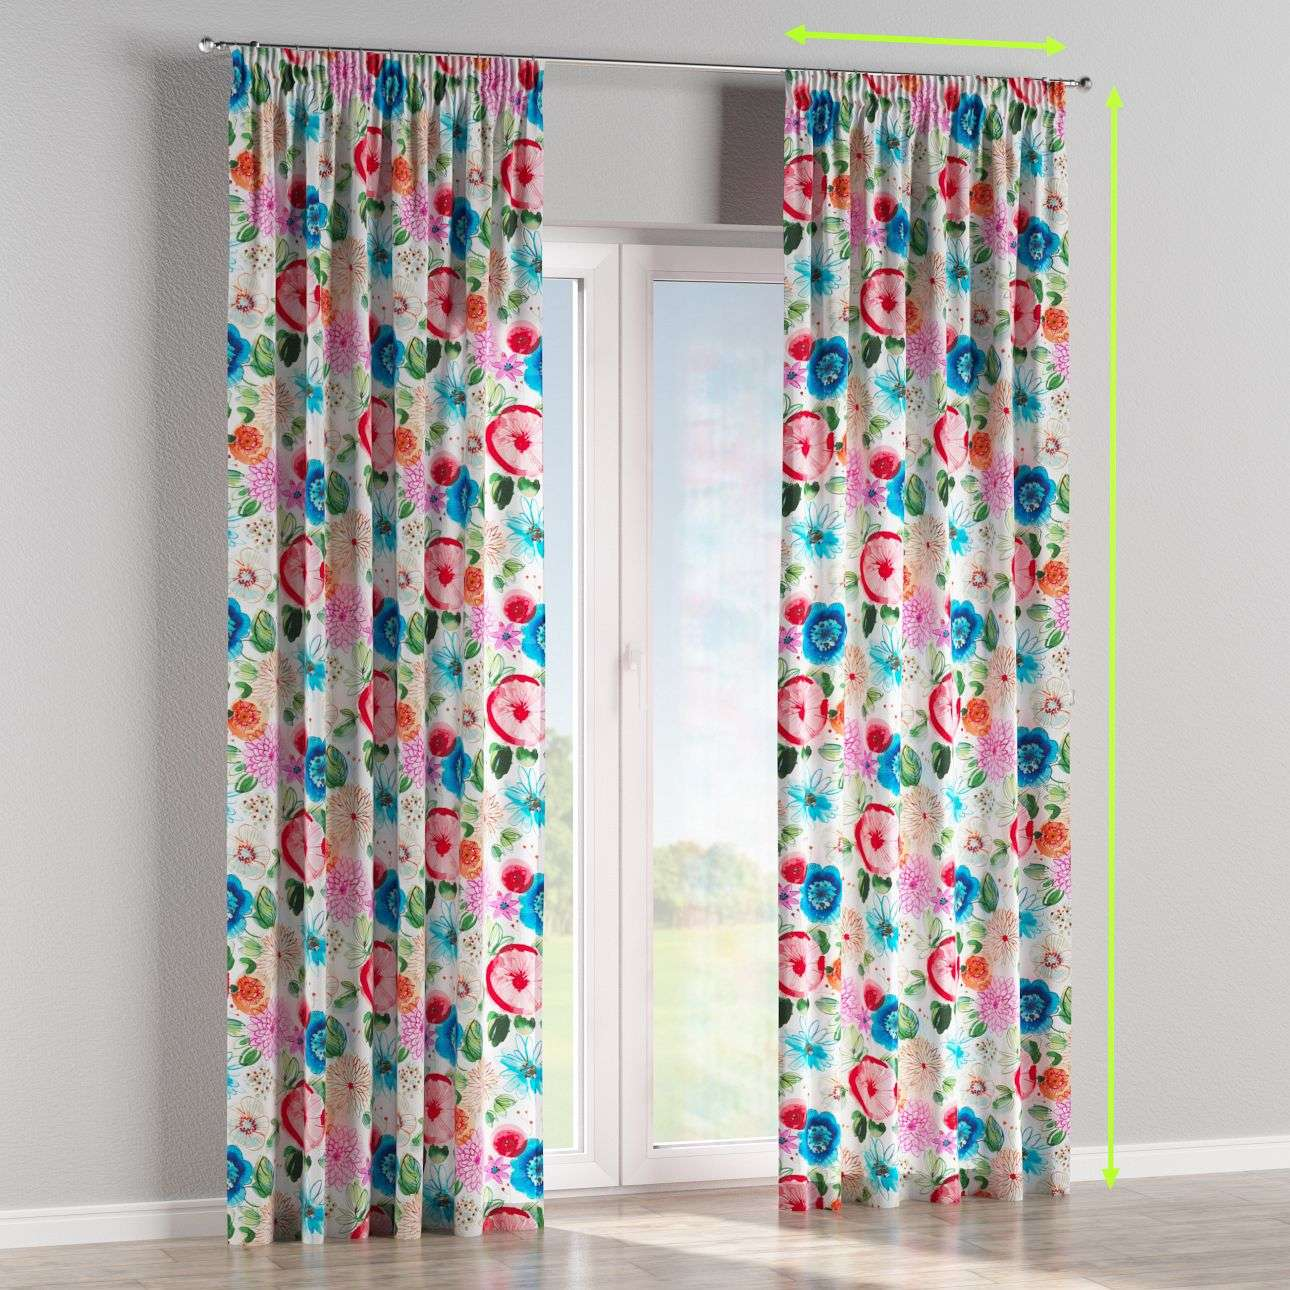 Pencil pleat curtains in collection New Art, fabric: 140-24